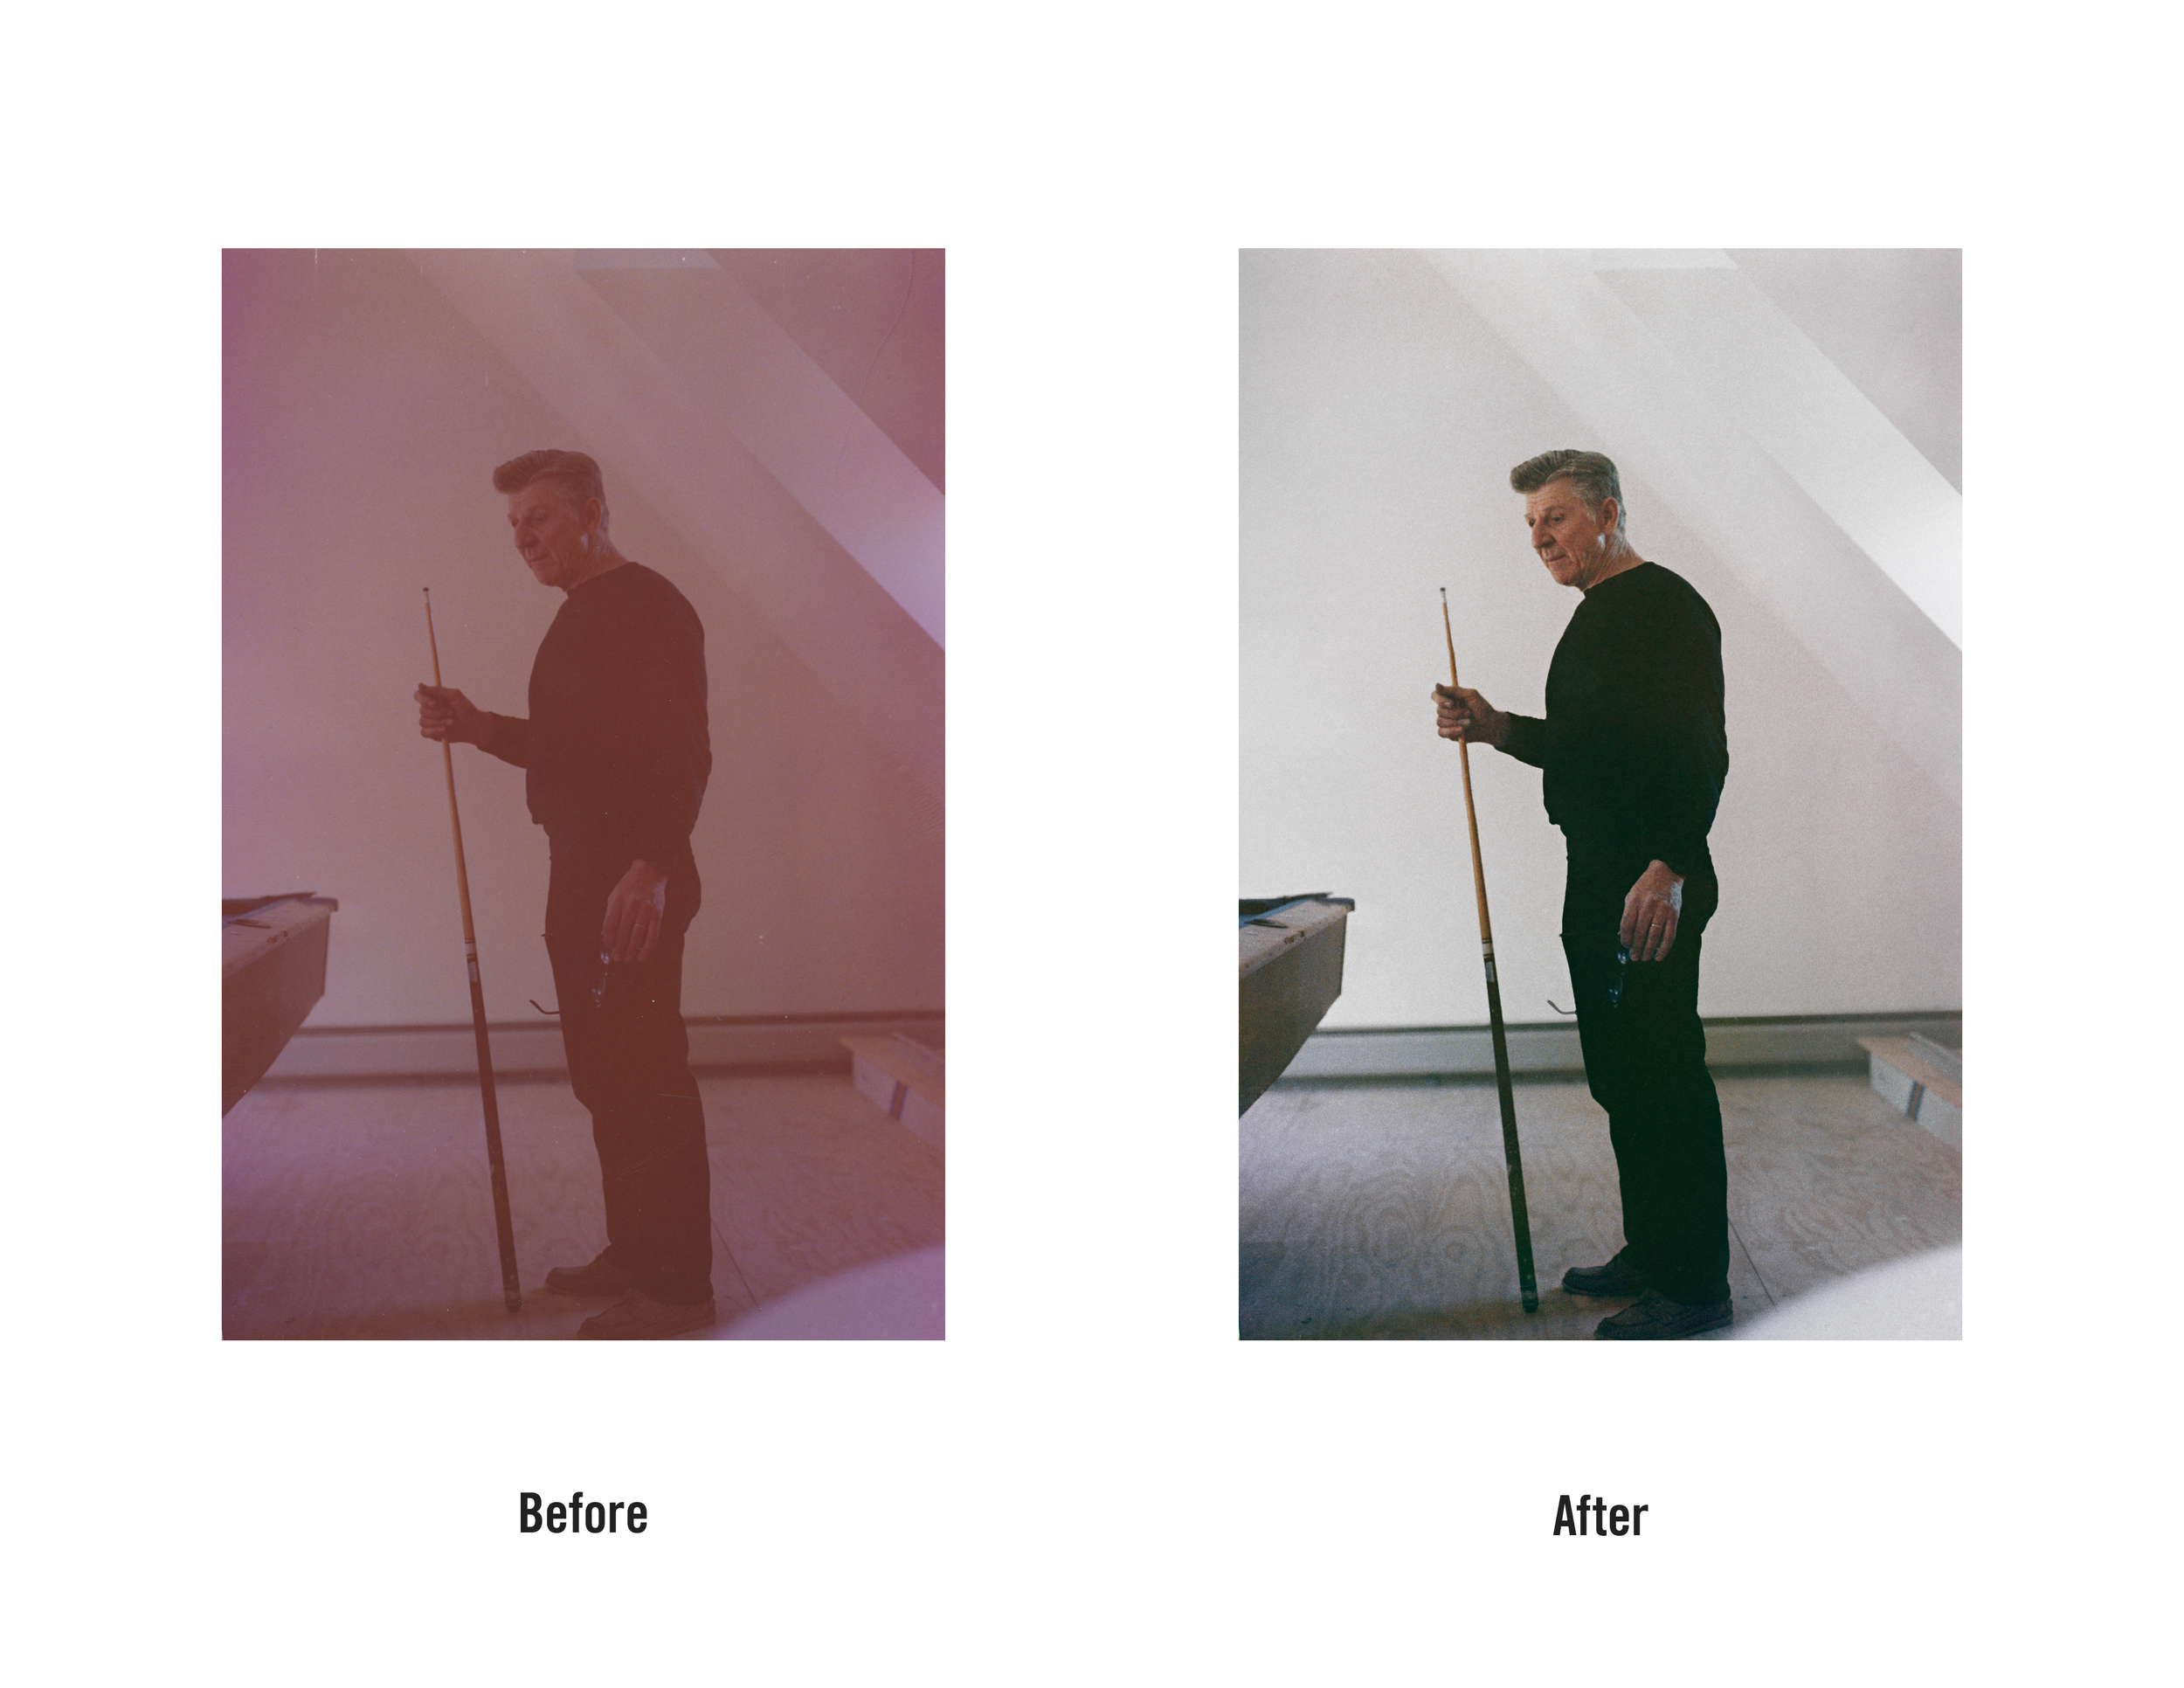 Before and After Book Template_Ashmanskas.jpg